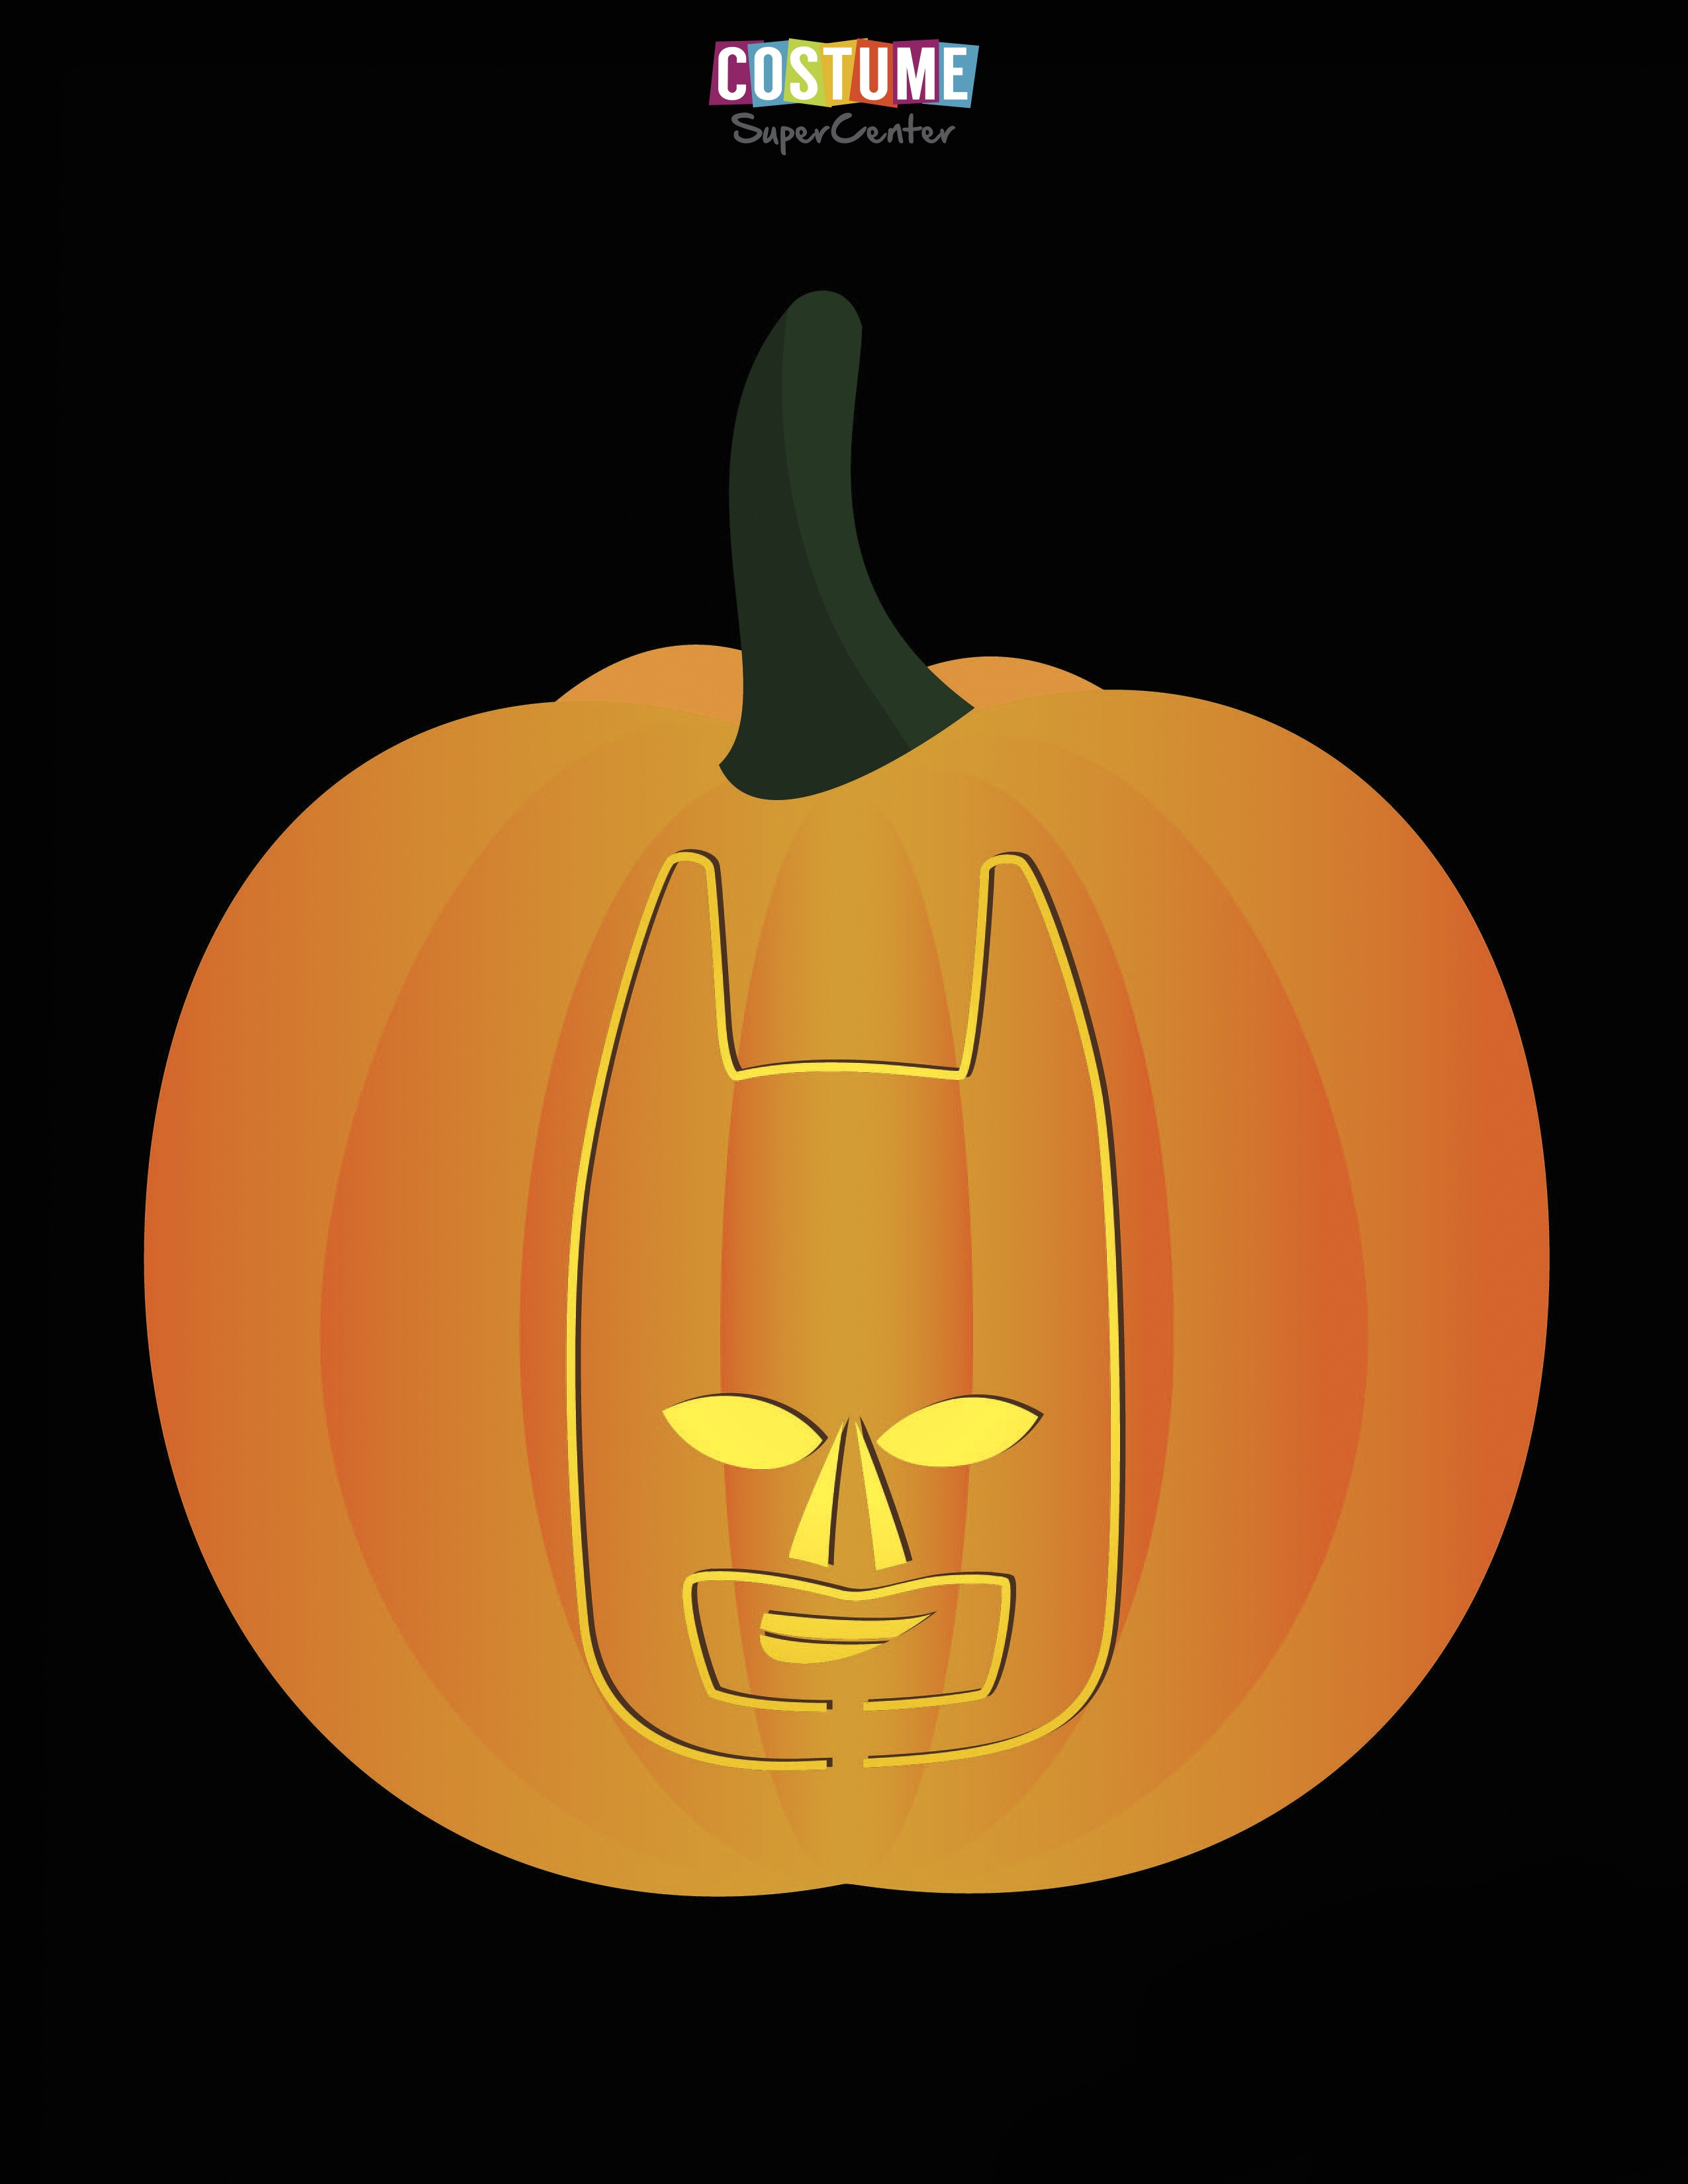 Fun And Free Printable Themed Pumpkin Carving Stencils — All For The - Free Printable Pumpkin Carving Stencils